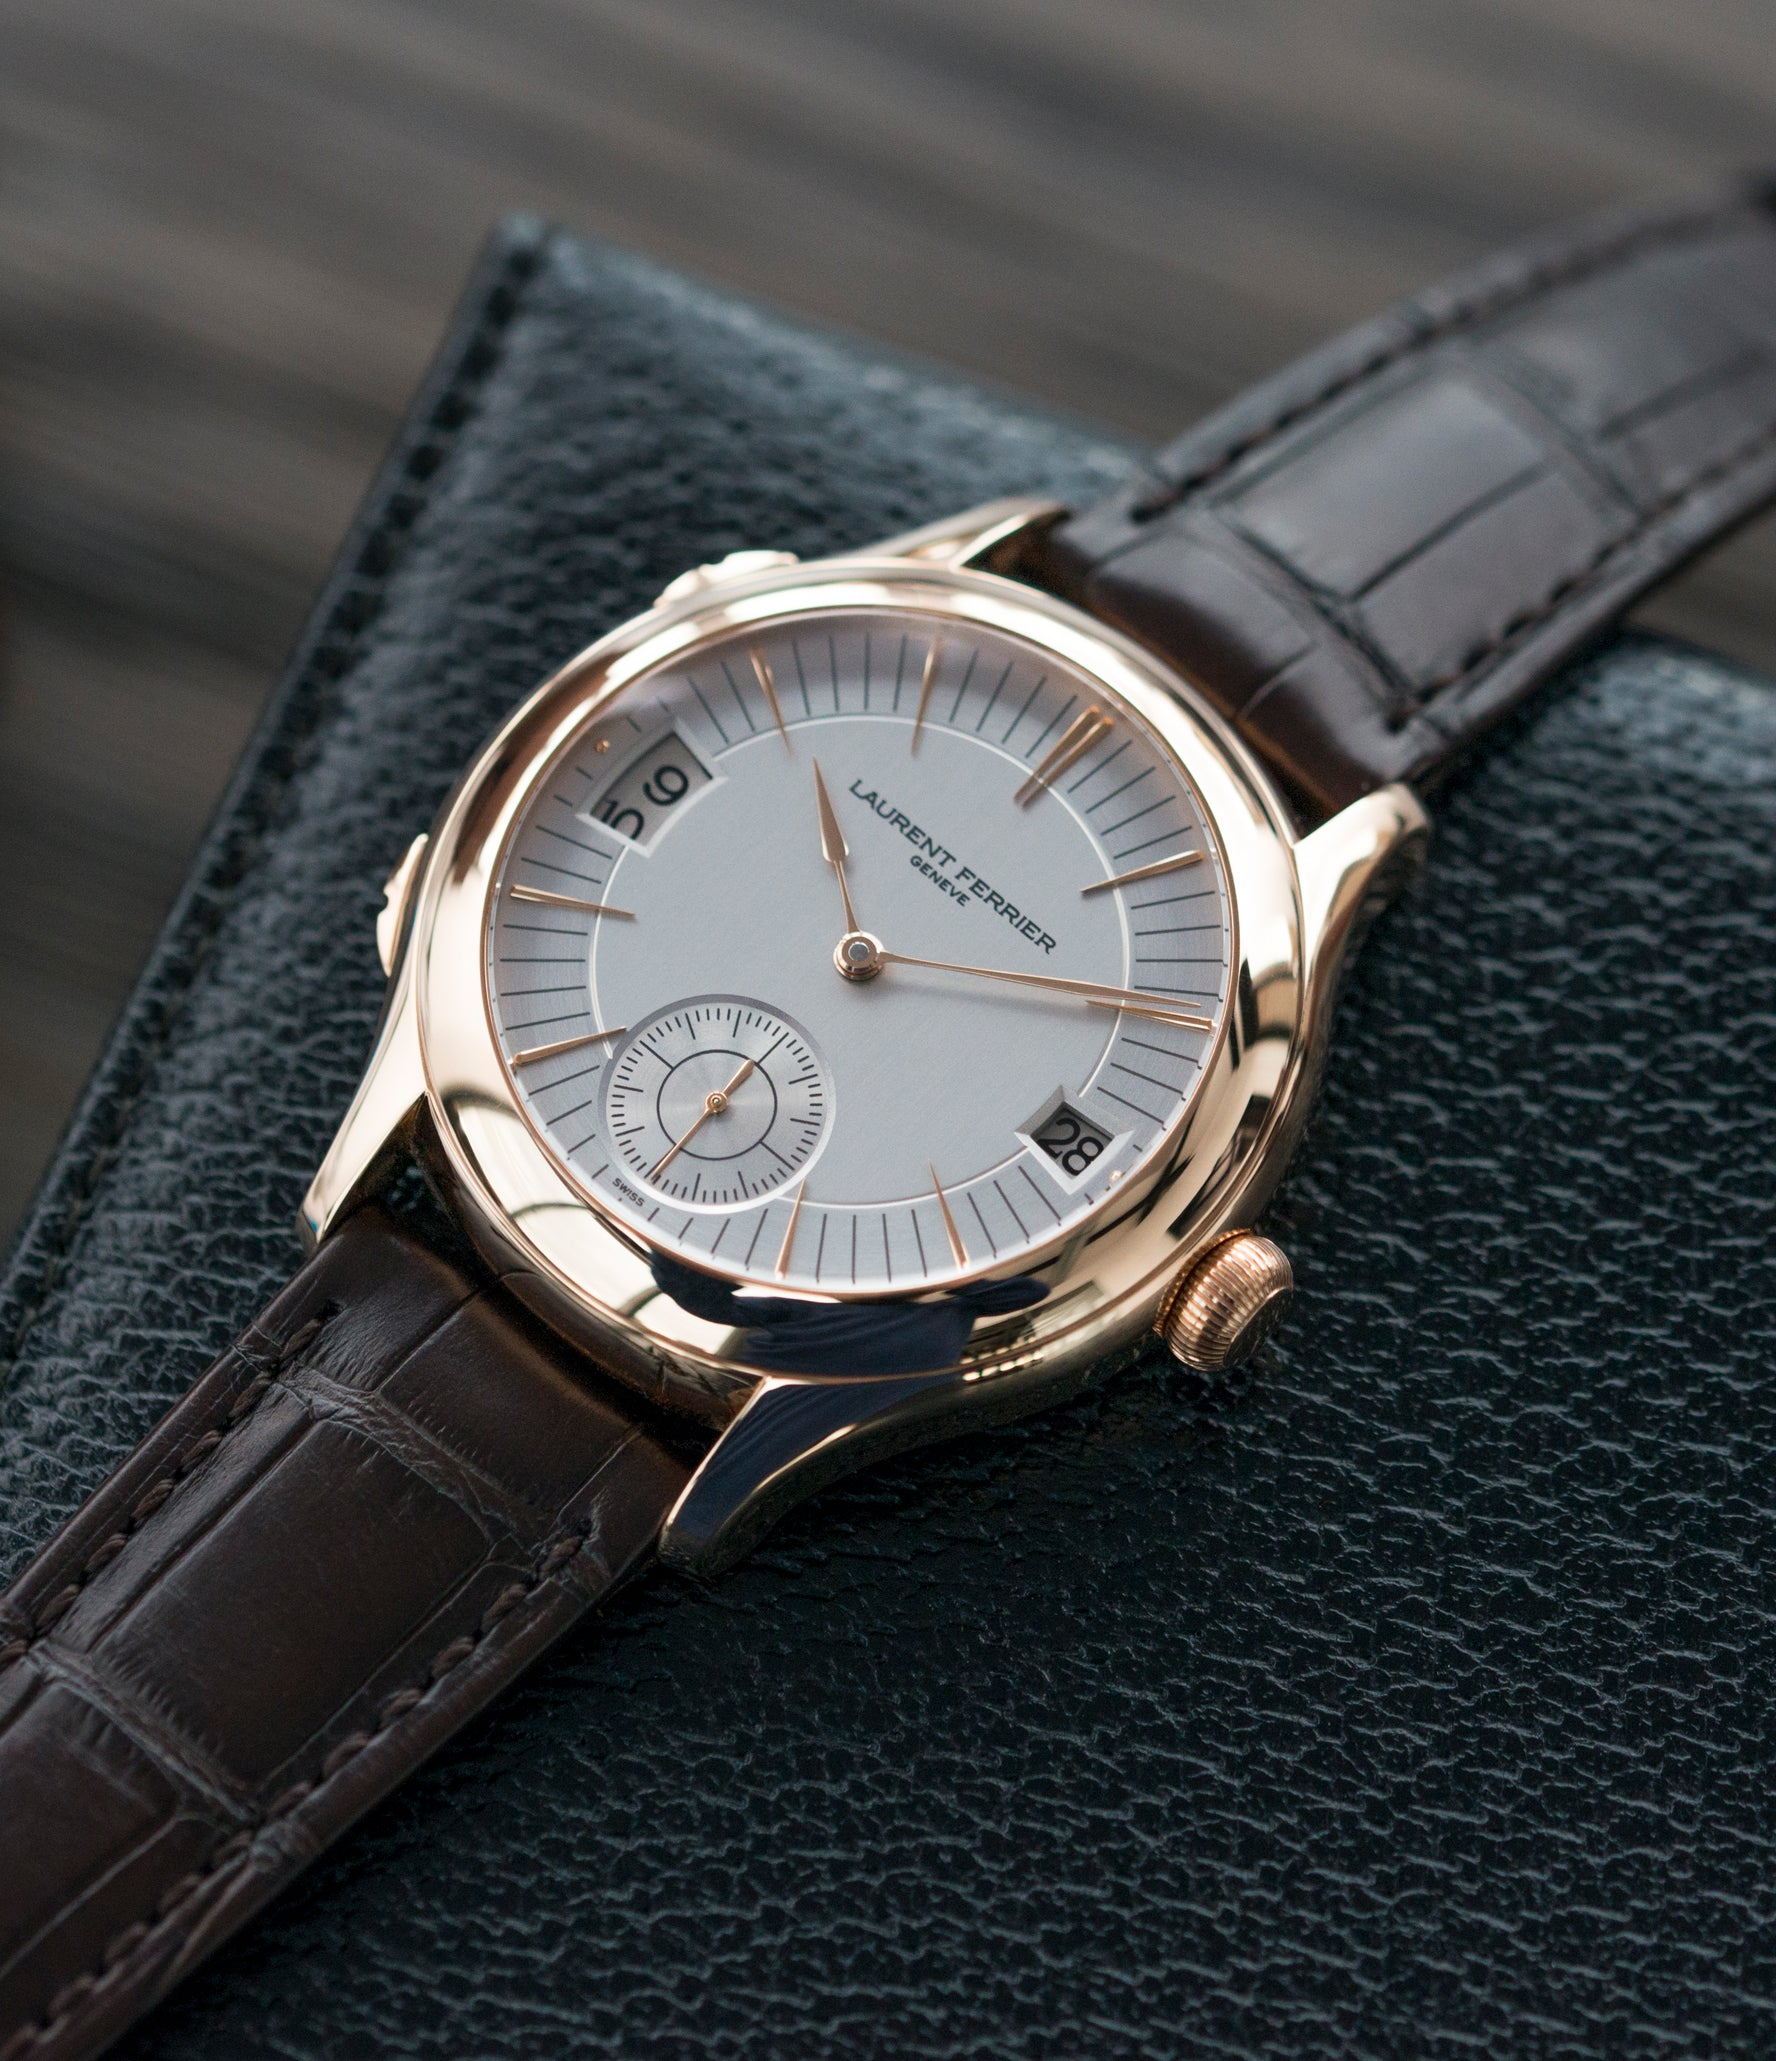 elegant gentlemen luxury watch Laurent Ferrier Galet Traveller Micro Rotor LF 230.01 rose gold watch additional prototype dial for sale online at A Collected Man London UK approved reseller of preowned independent watchmakers